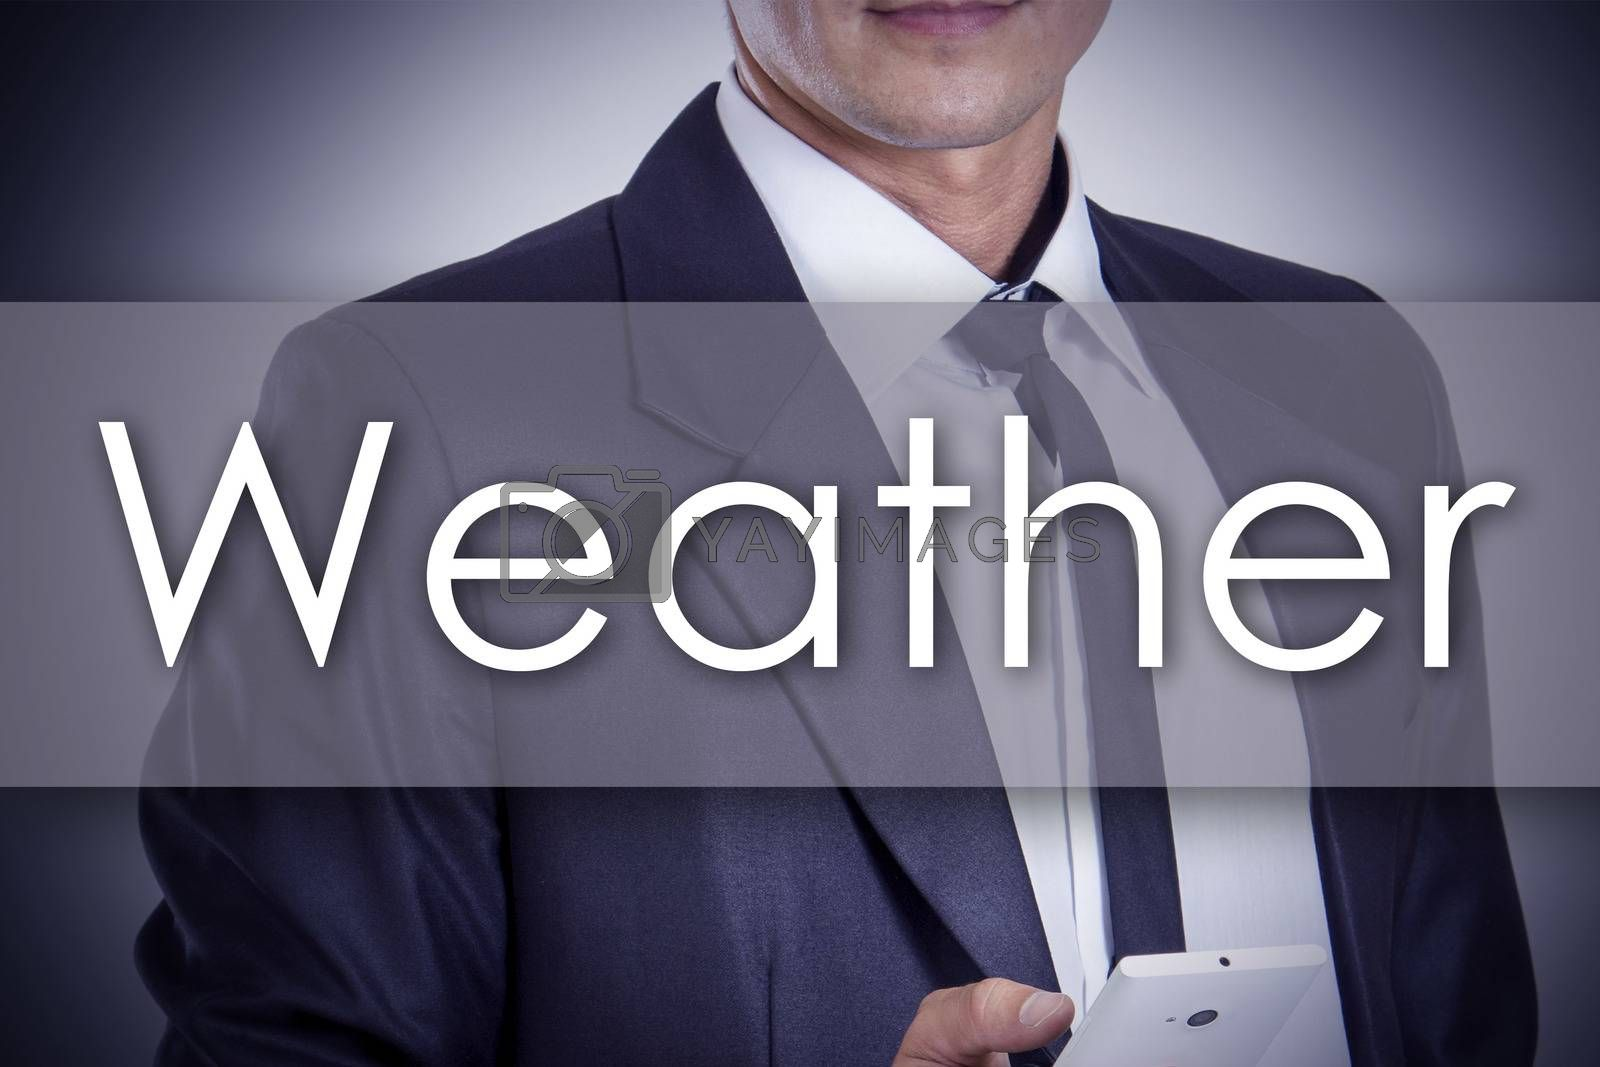 Weather - Young businessman with text - business concept - horizontal image